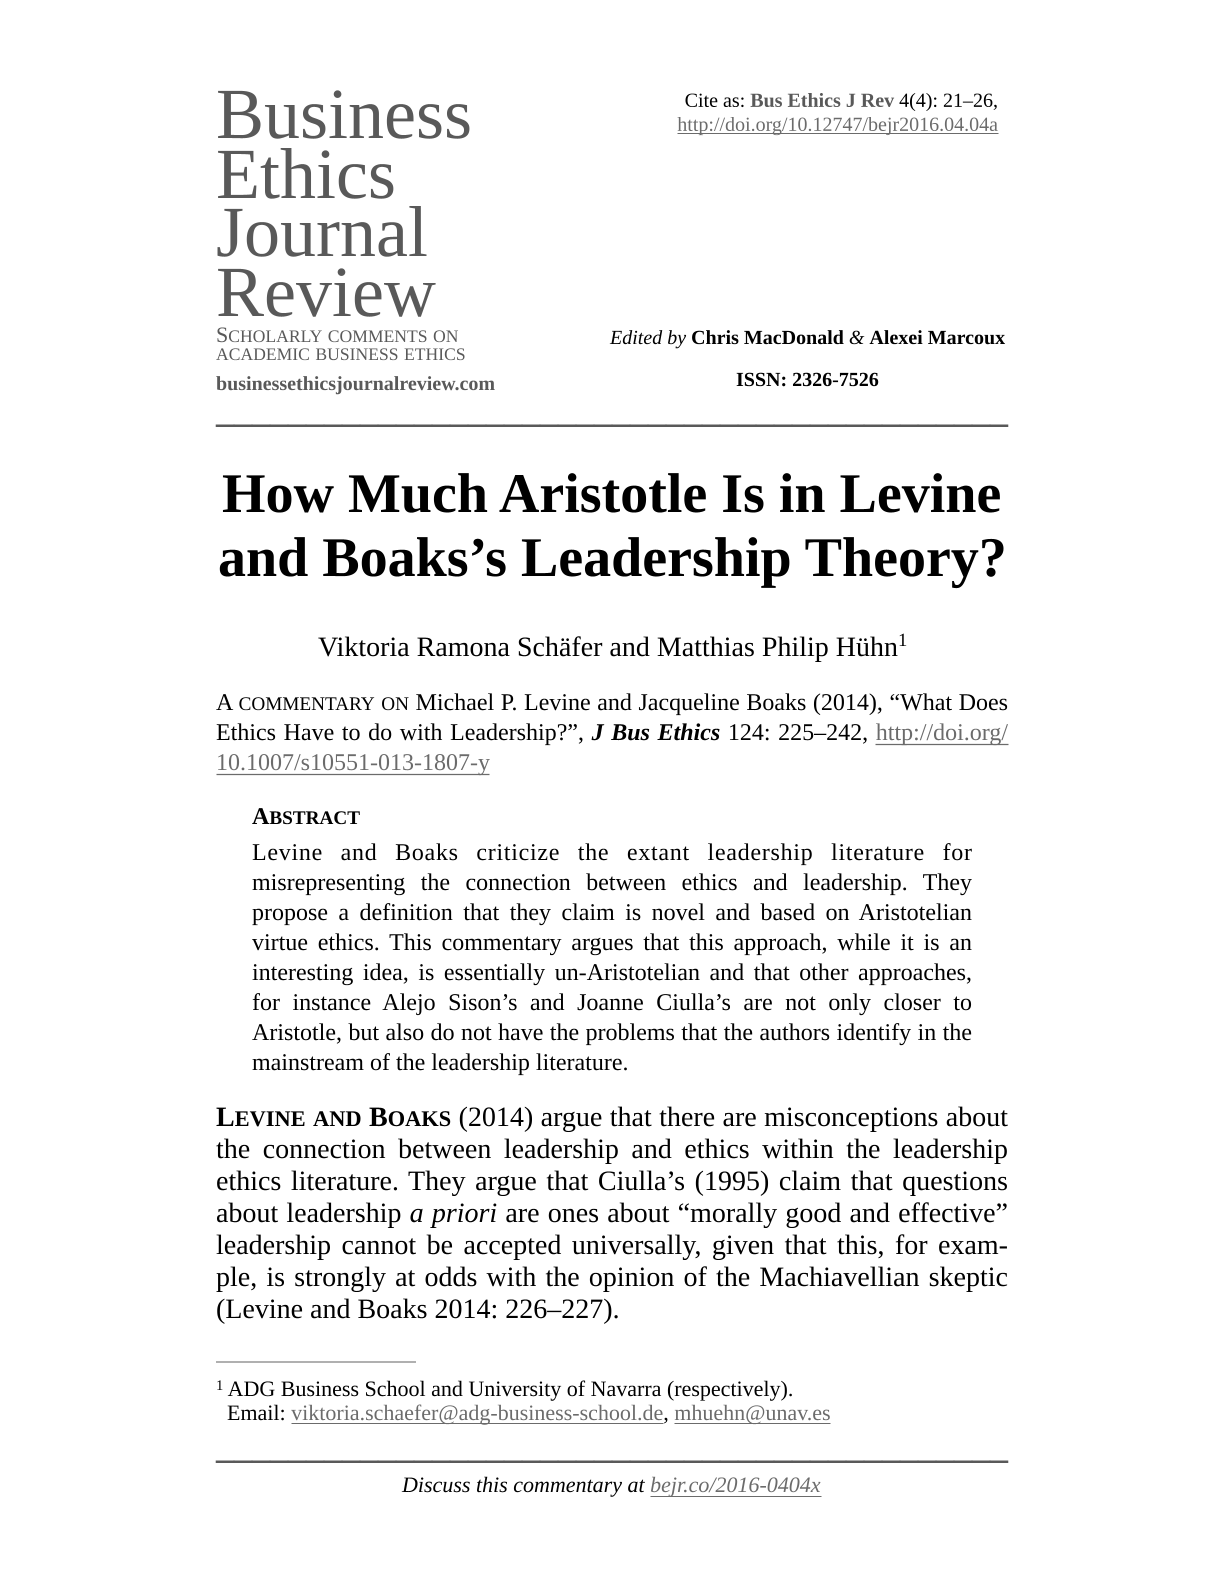 Literature review for leadership theories